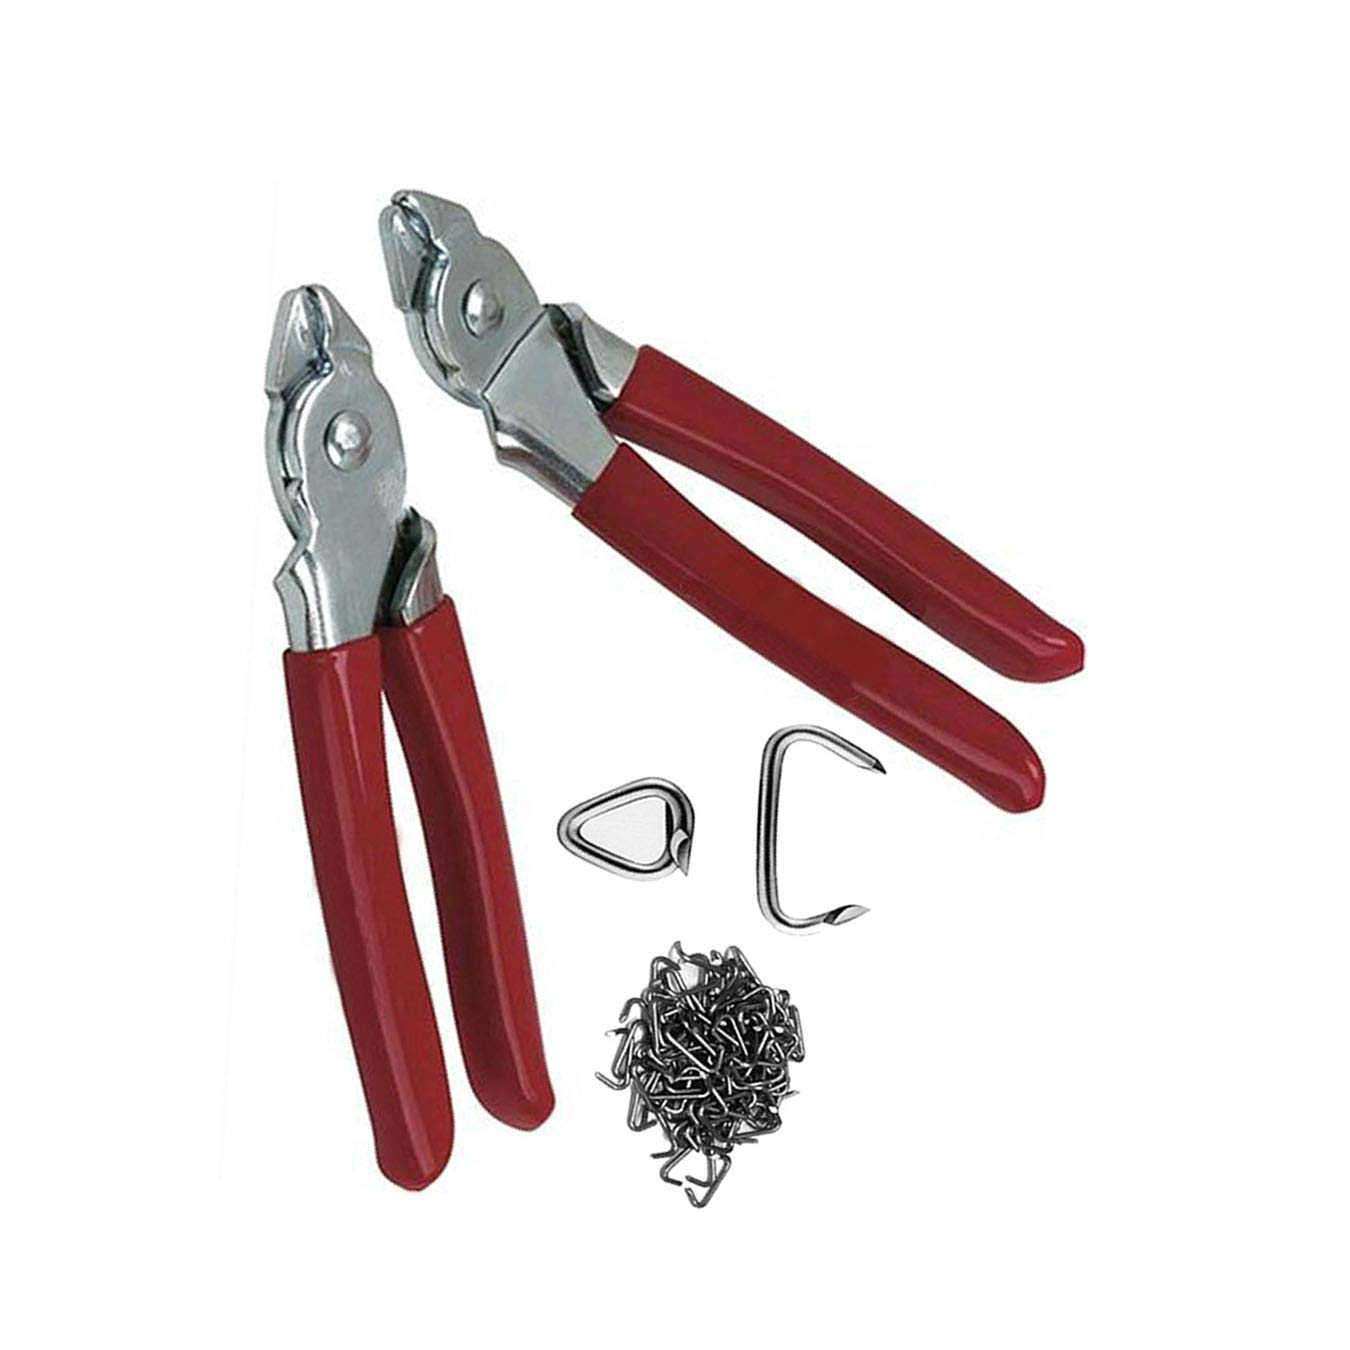 Hog Ring Pliers 170 Rings 3/4 Kit Straight and Bend 2 plier for Automotive Upholstery Supplies Tools by Drake Off Road